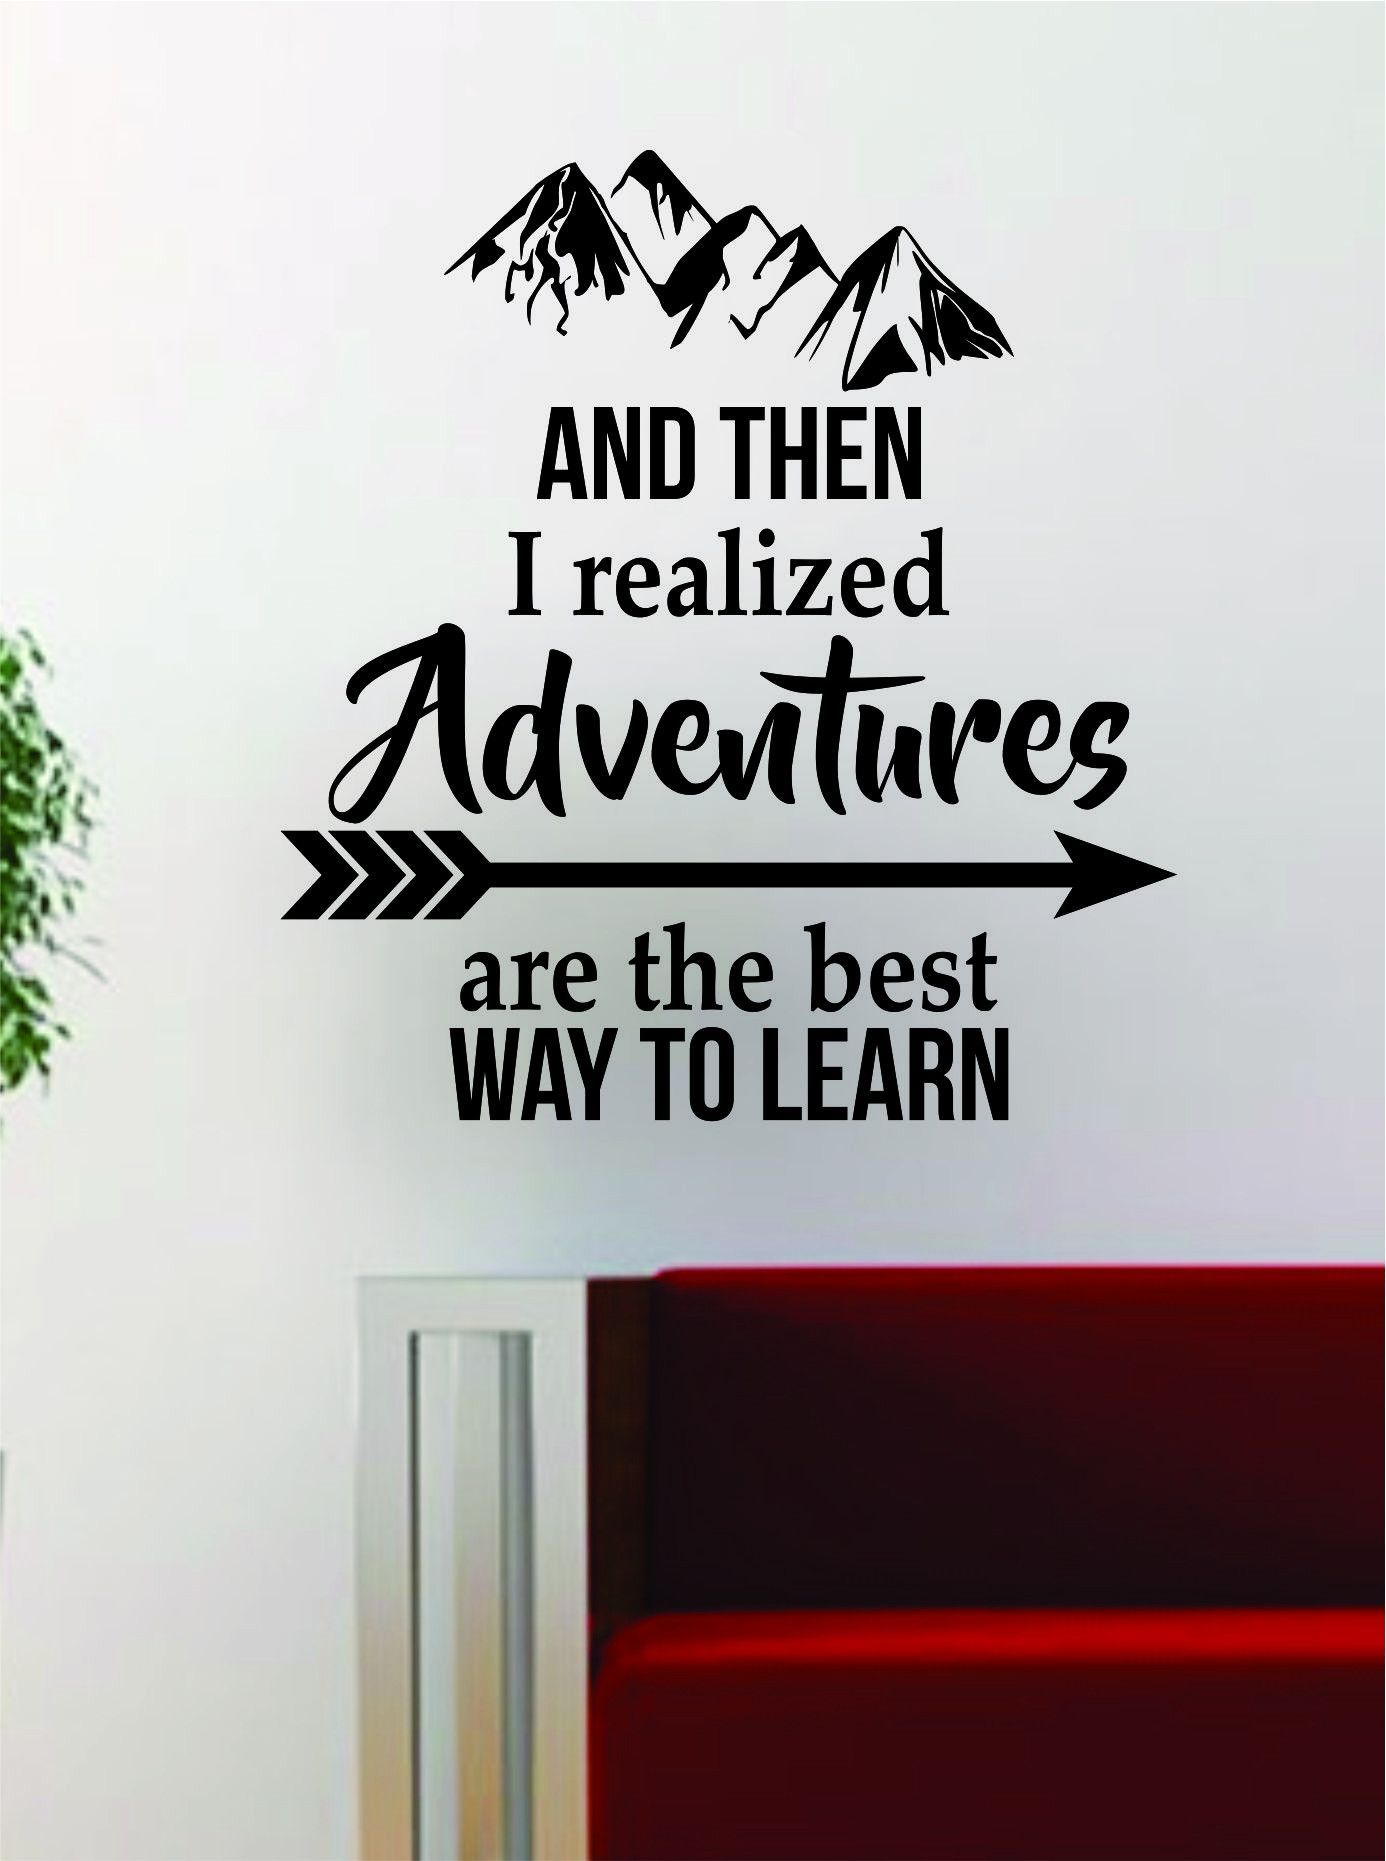 Adventures are the Best Way to Learn Quote Decal Sticker Wall Vinyl Art Words  Decor Travel